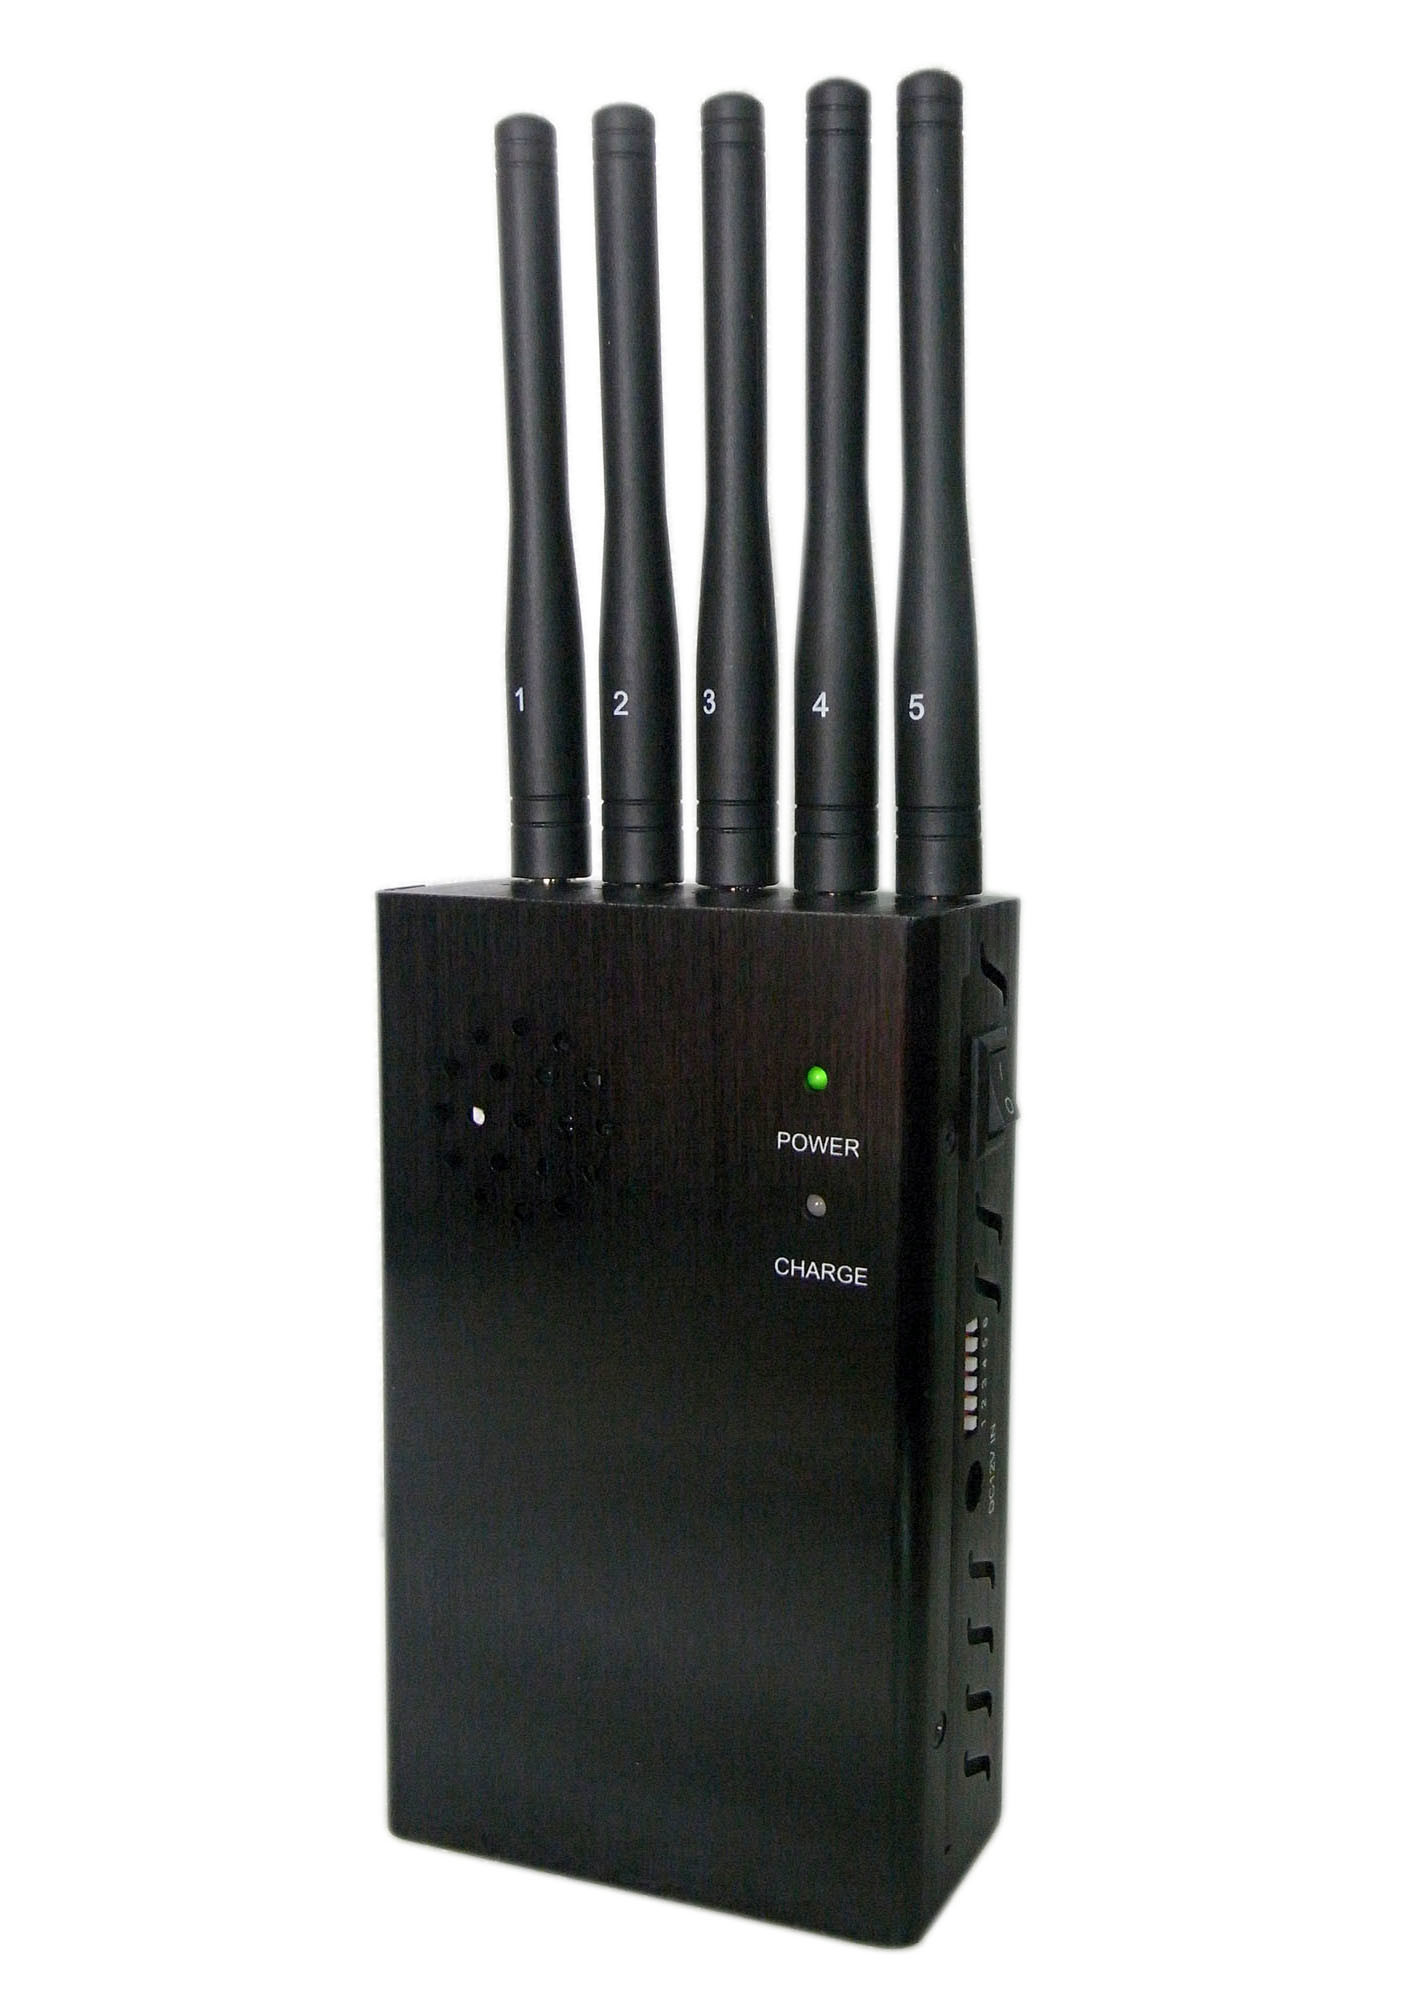 special phone jammer devices - China Wireless 5 Antenna 2g/3G/4G Jammer/Blocker, High Power Handheld Portable Cellphone Wireless Jamer-Omnidirectional Antennas - China 5 Band Signal Blockers, Five Antennas Jammers